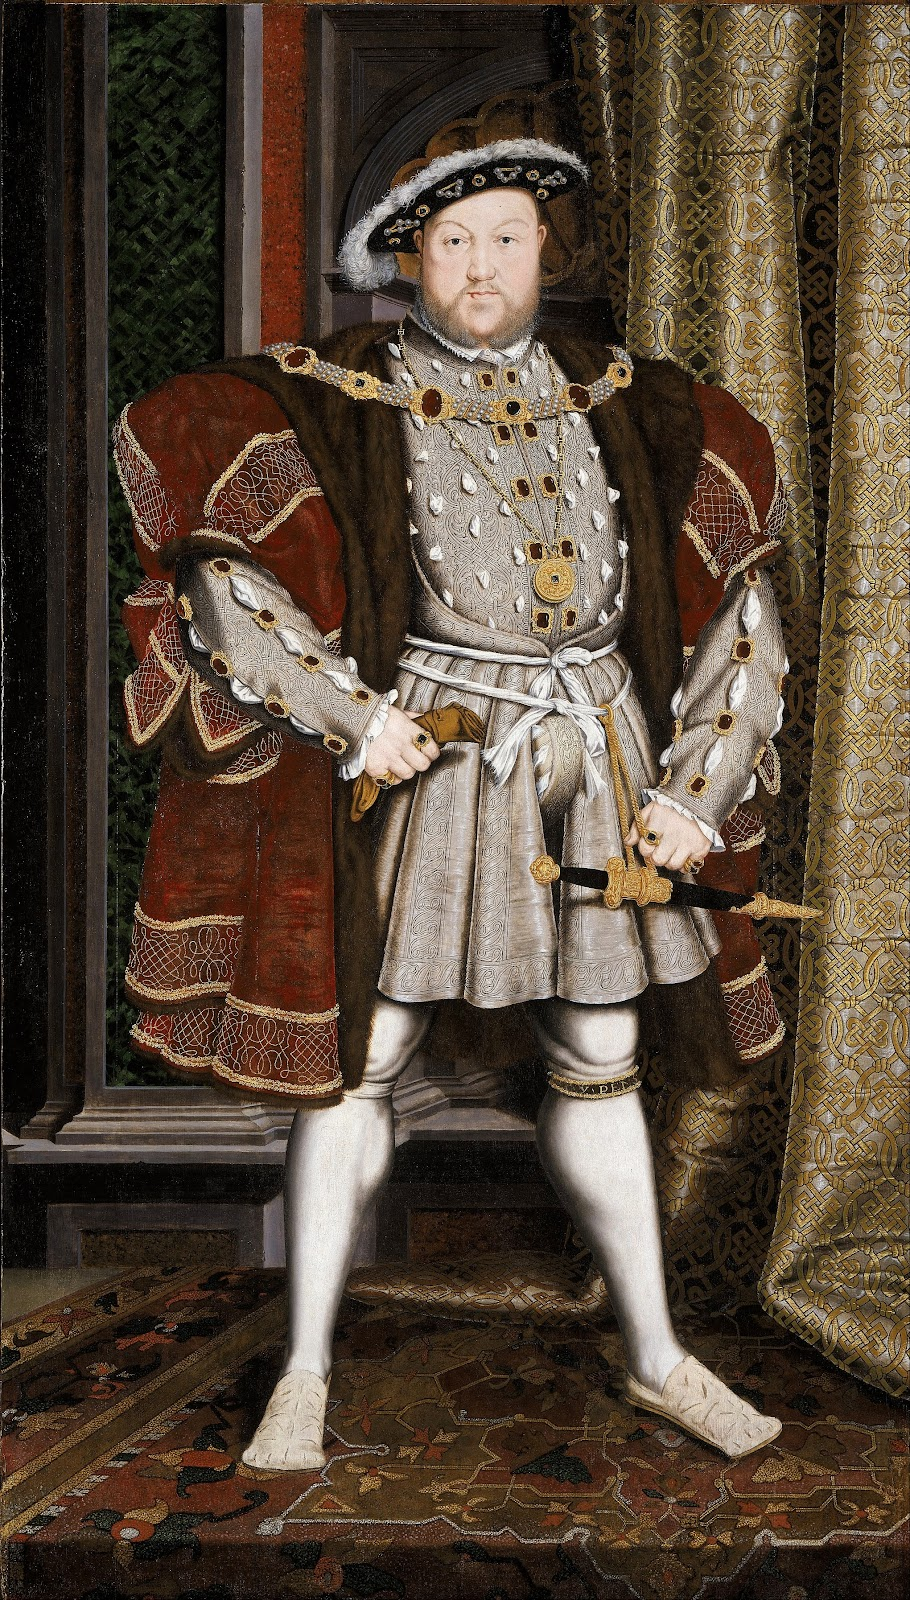 Portrait of Henry VIII in his robes of office looking very pleased with himself.